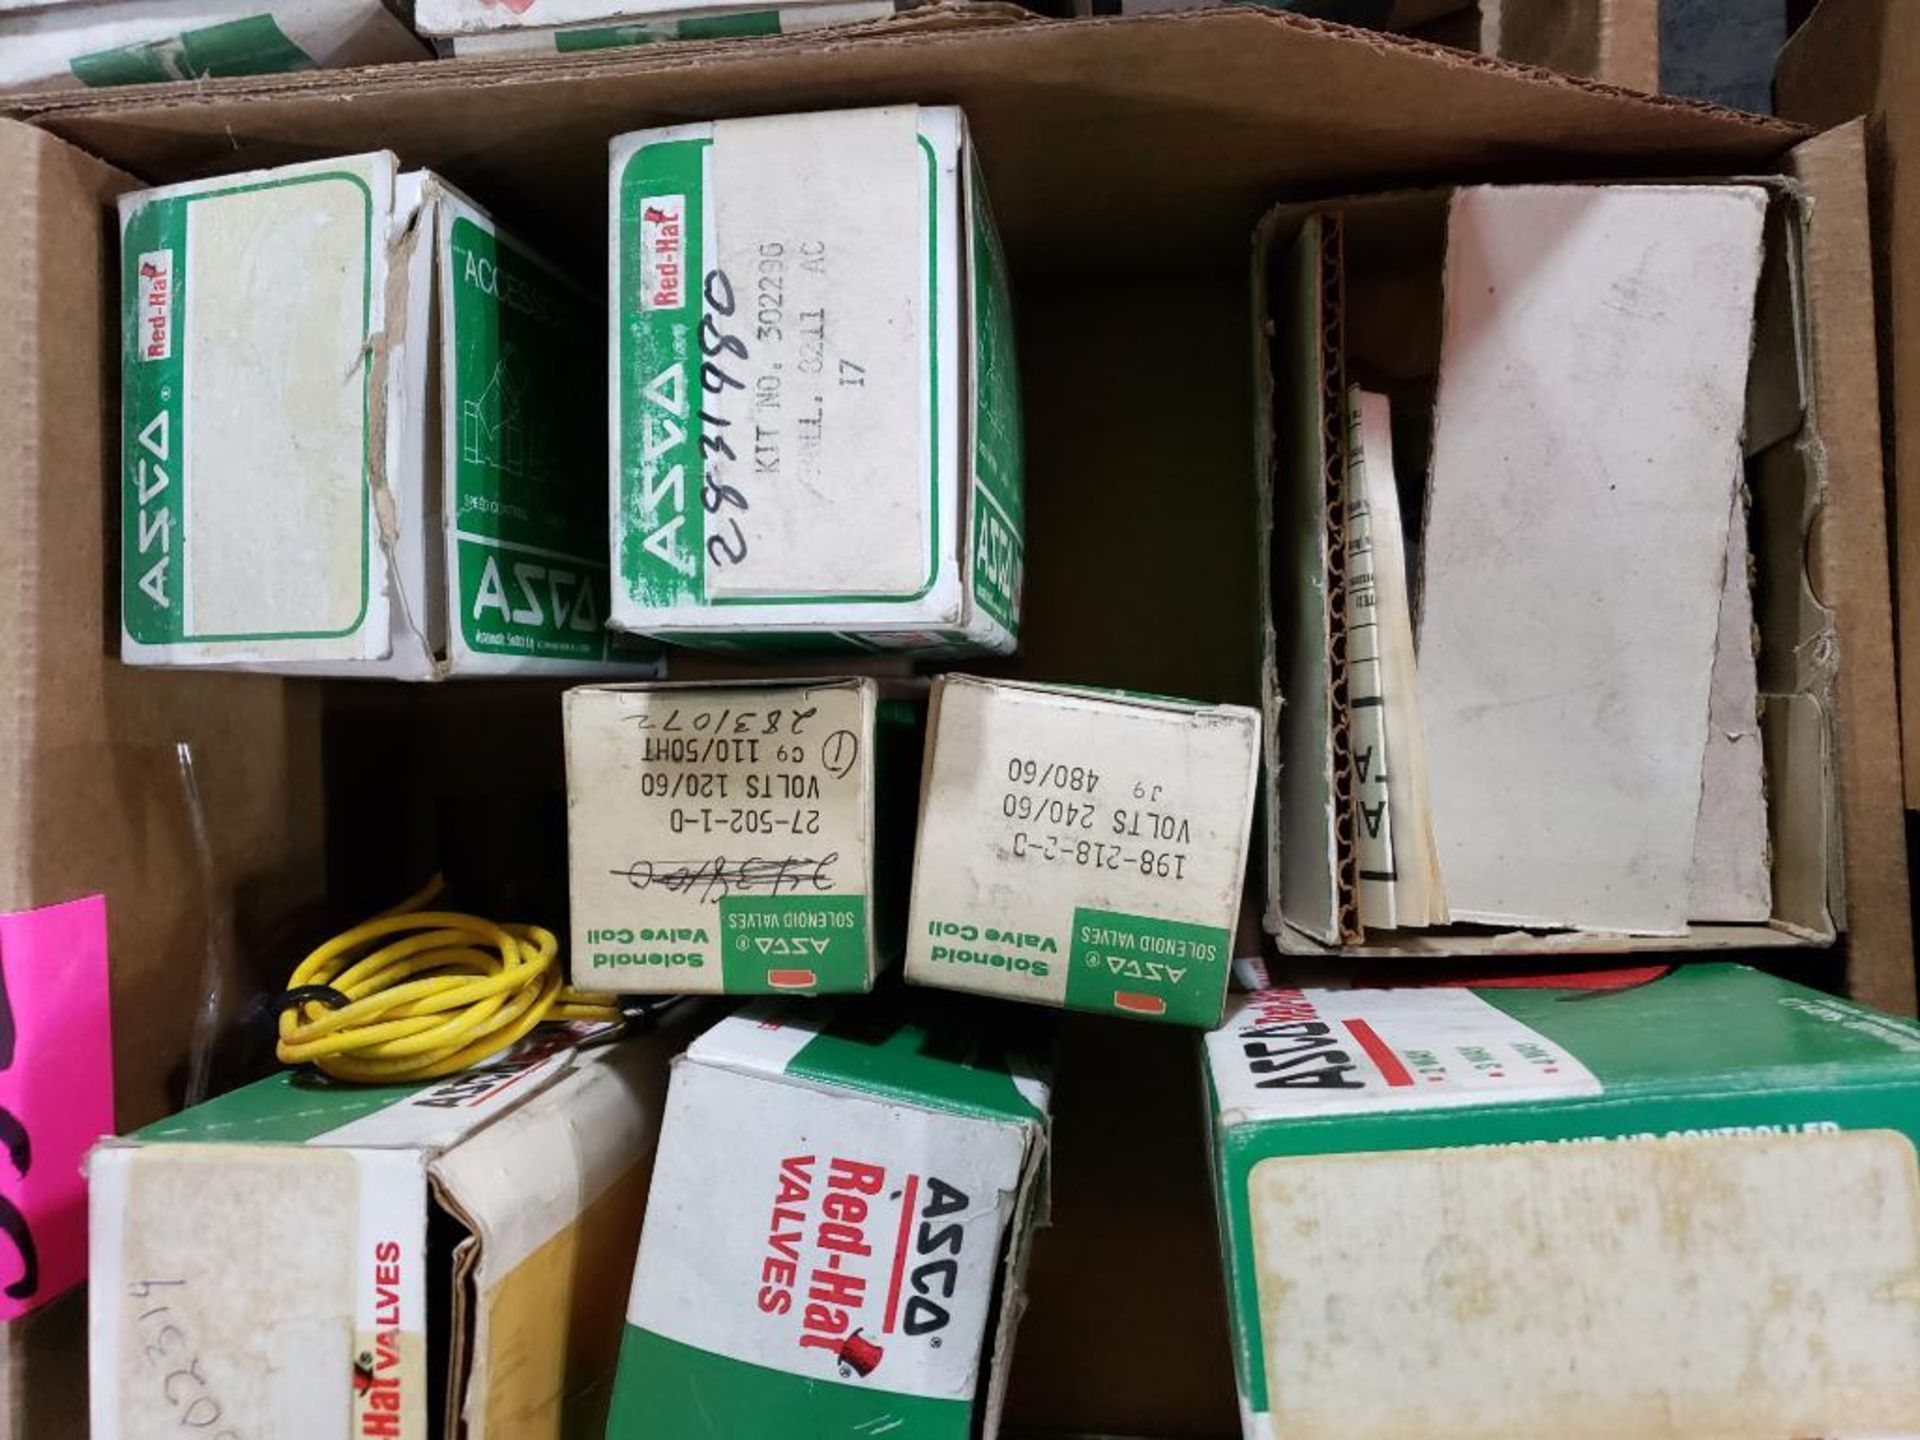 Lot 552 - Assorted Asco valves and parts as pictured.